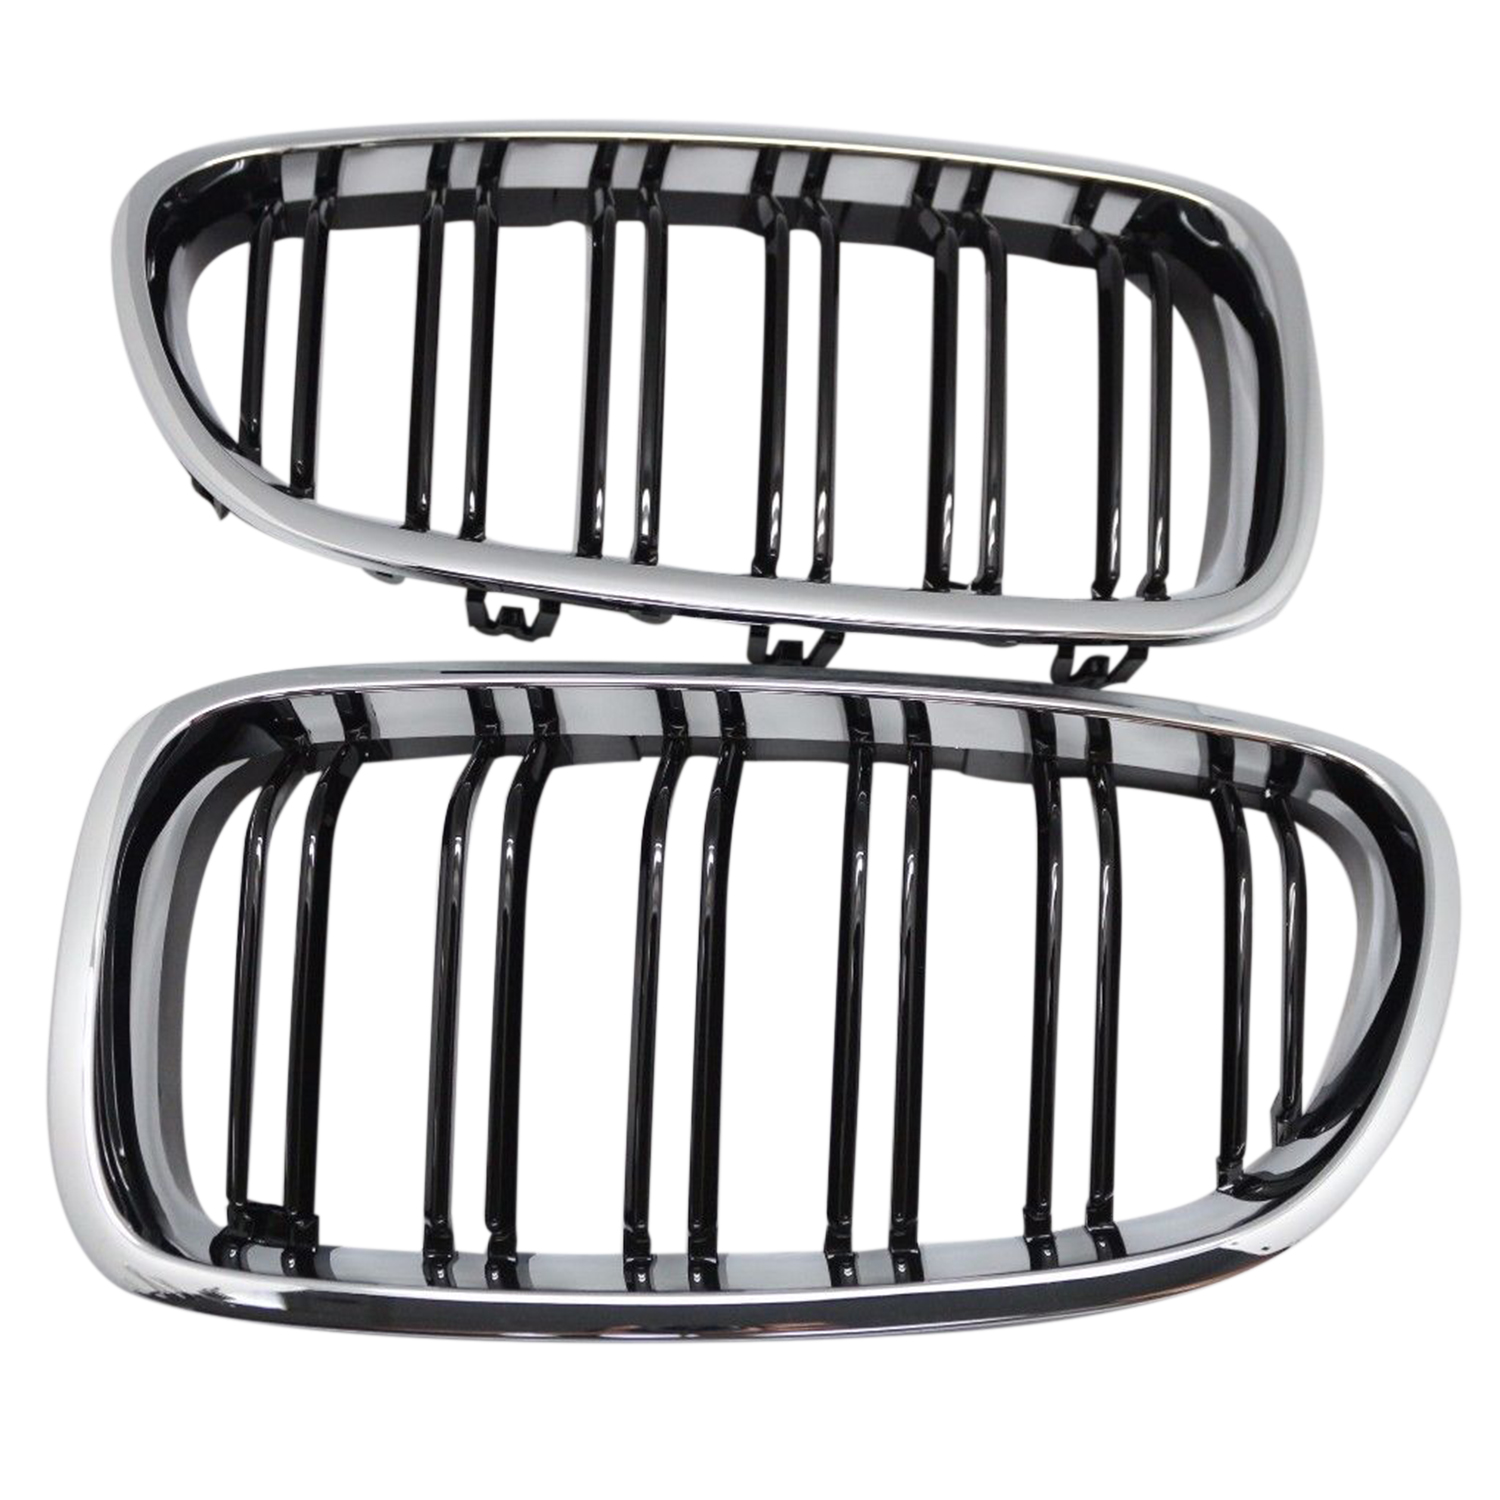 Silver + black Dual Fin Front Grille Grill Hood Nose For BMW F10 F11 5 2010 2015|Racing Grills|   - title=